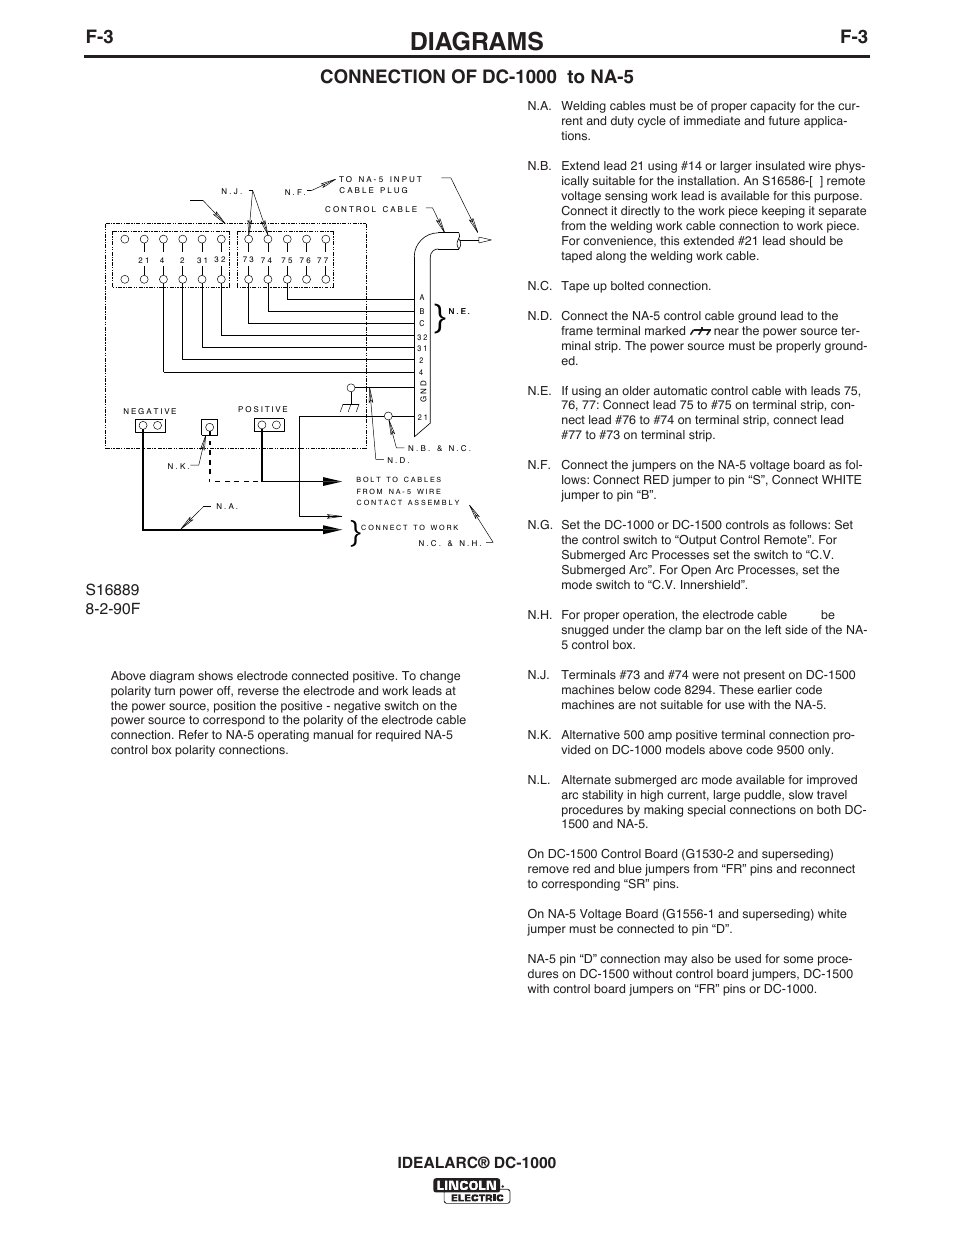 diagrams, idealarc® dc-1000 | lincoln electric im420 idealarc dc-1000 user  manual | page 26 / 34  manuals directory